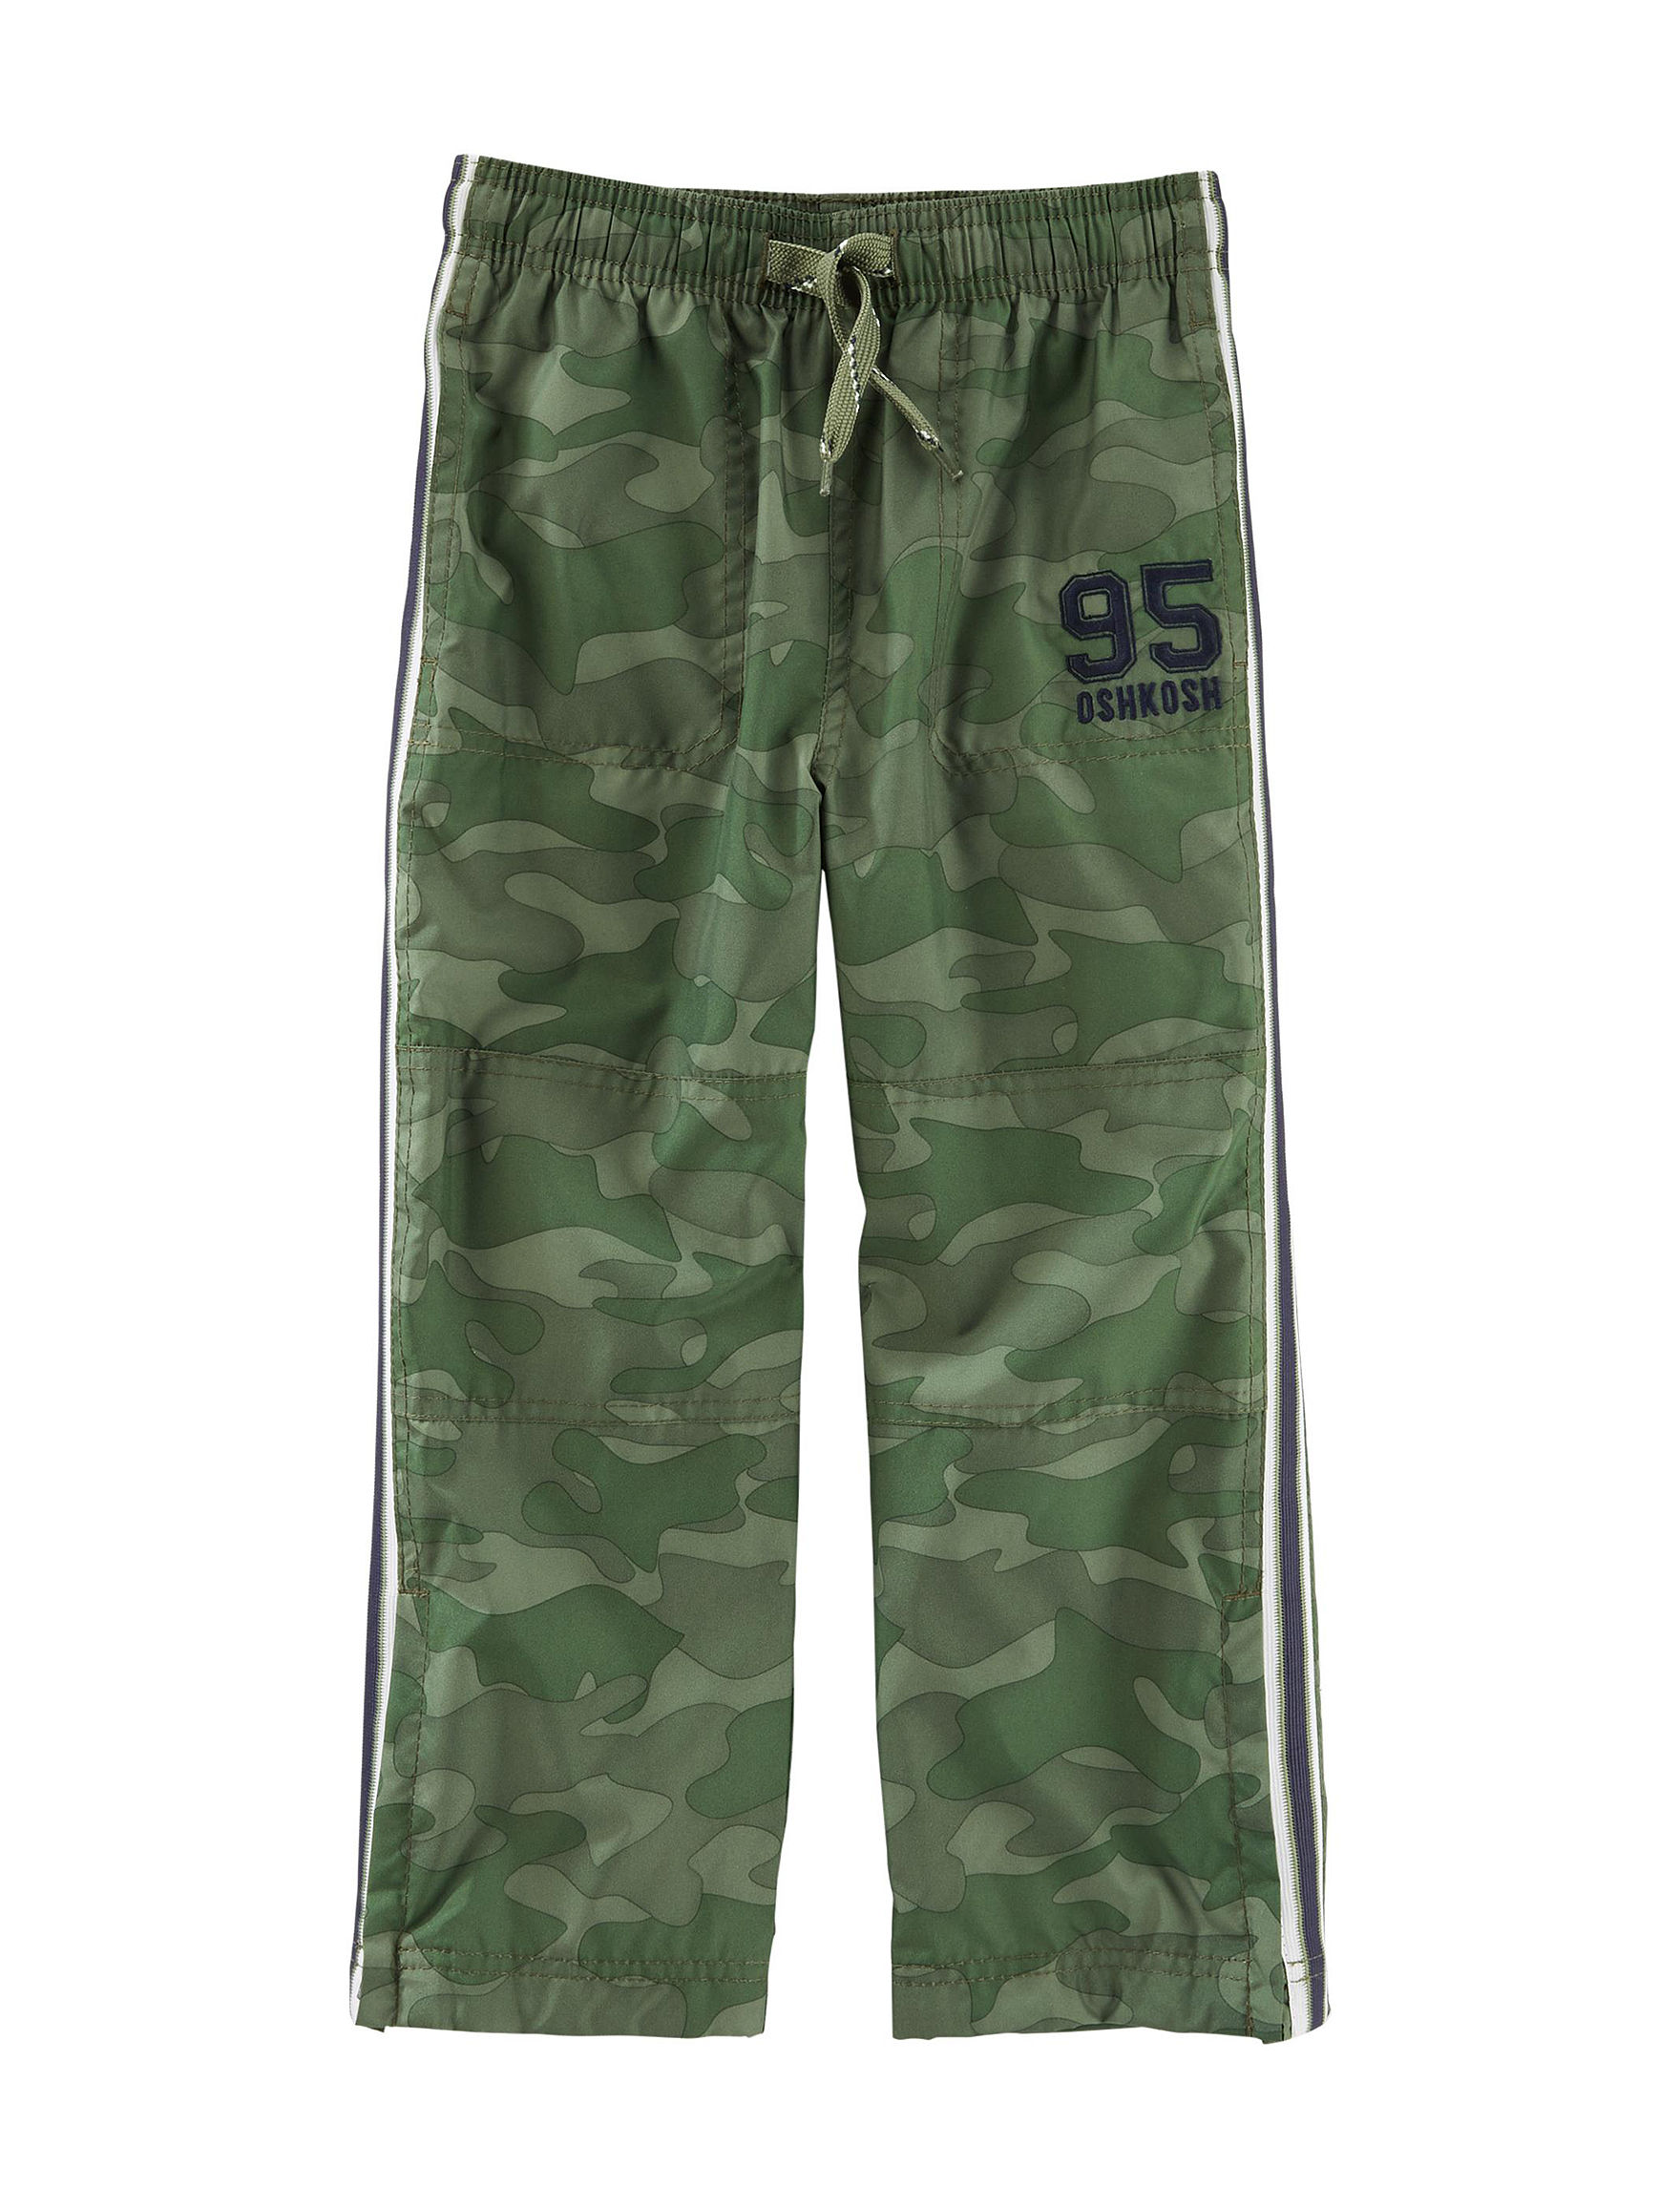 Oshkosh B'Gosh Camo Soft Pants